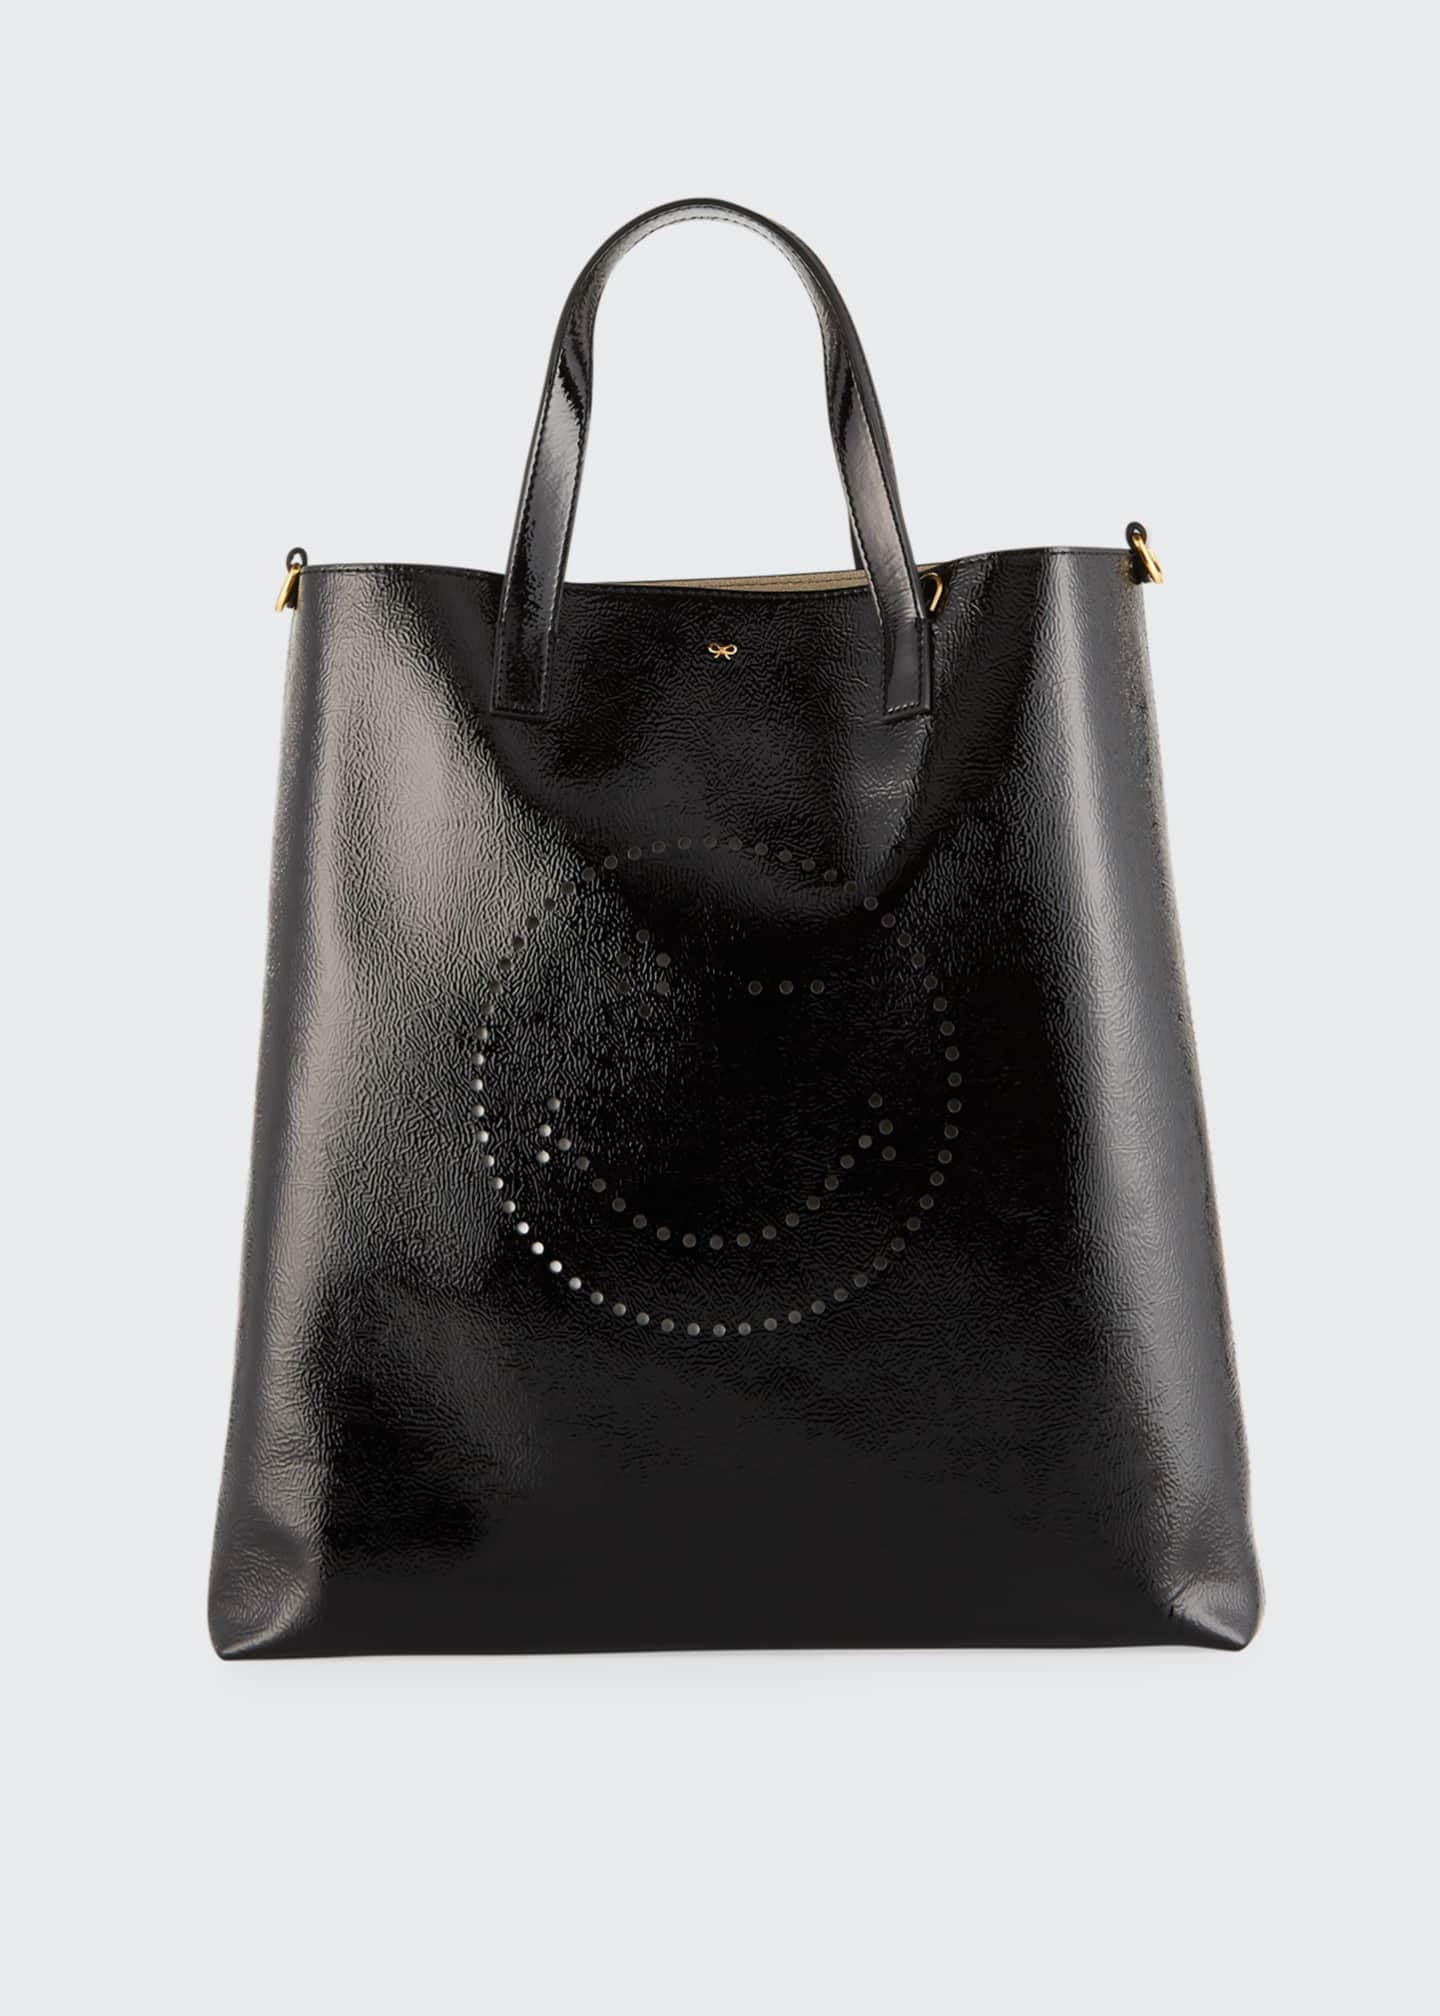 Anya Hindmarch Perforated Wink Shiny Tote Bag